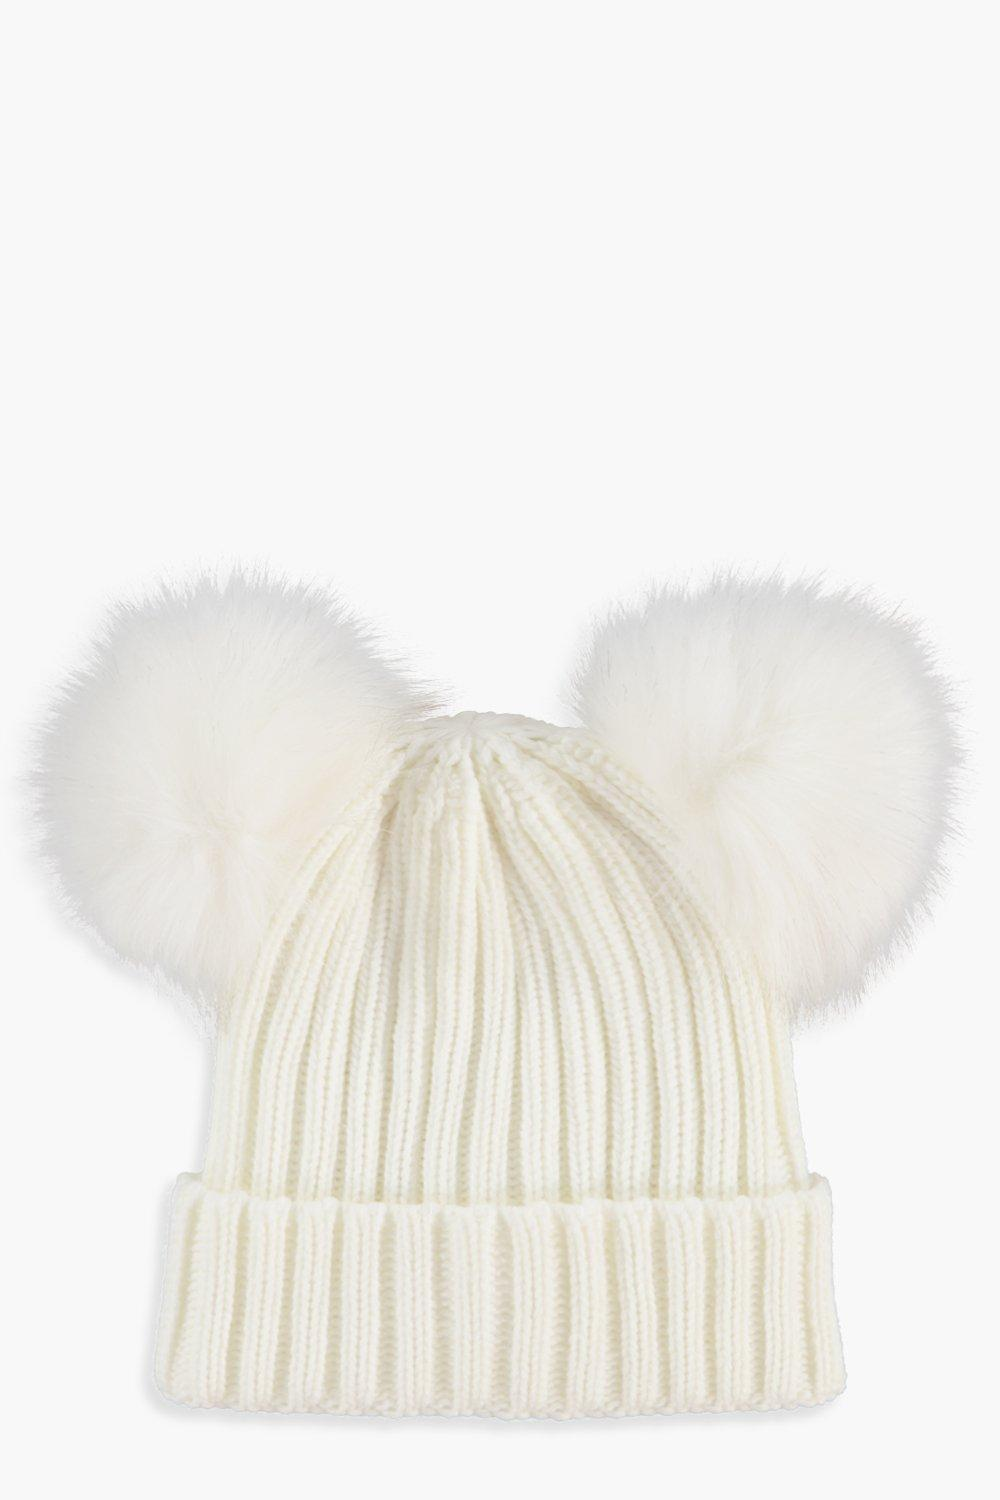 7d7e4274c76 Girls Double Pom Pom Beanie Hat. Hover to zoom